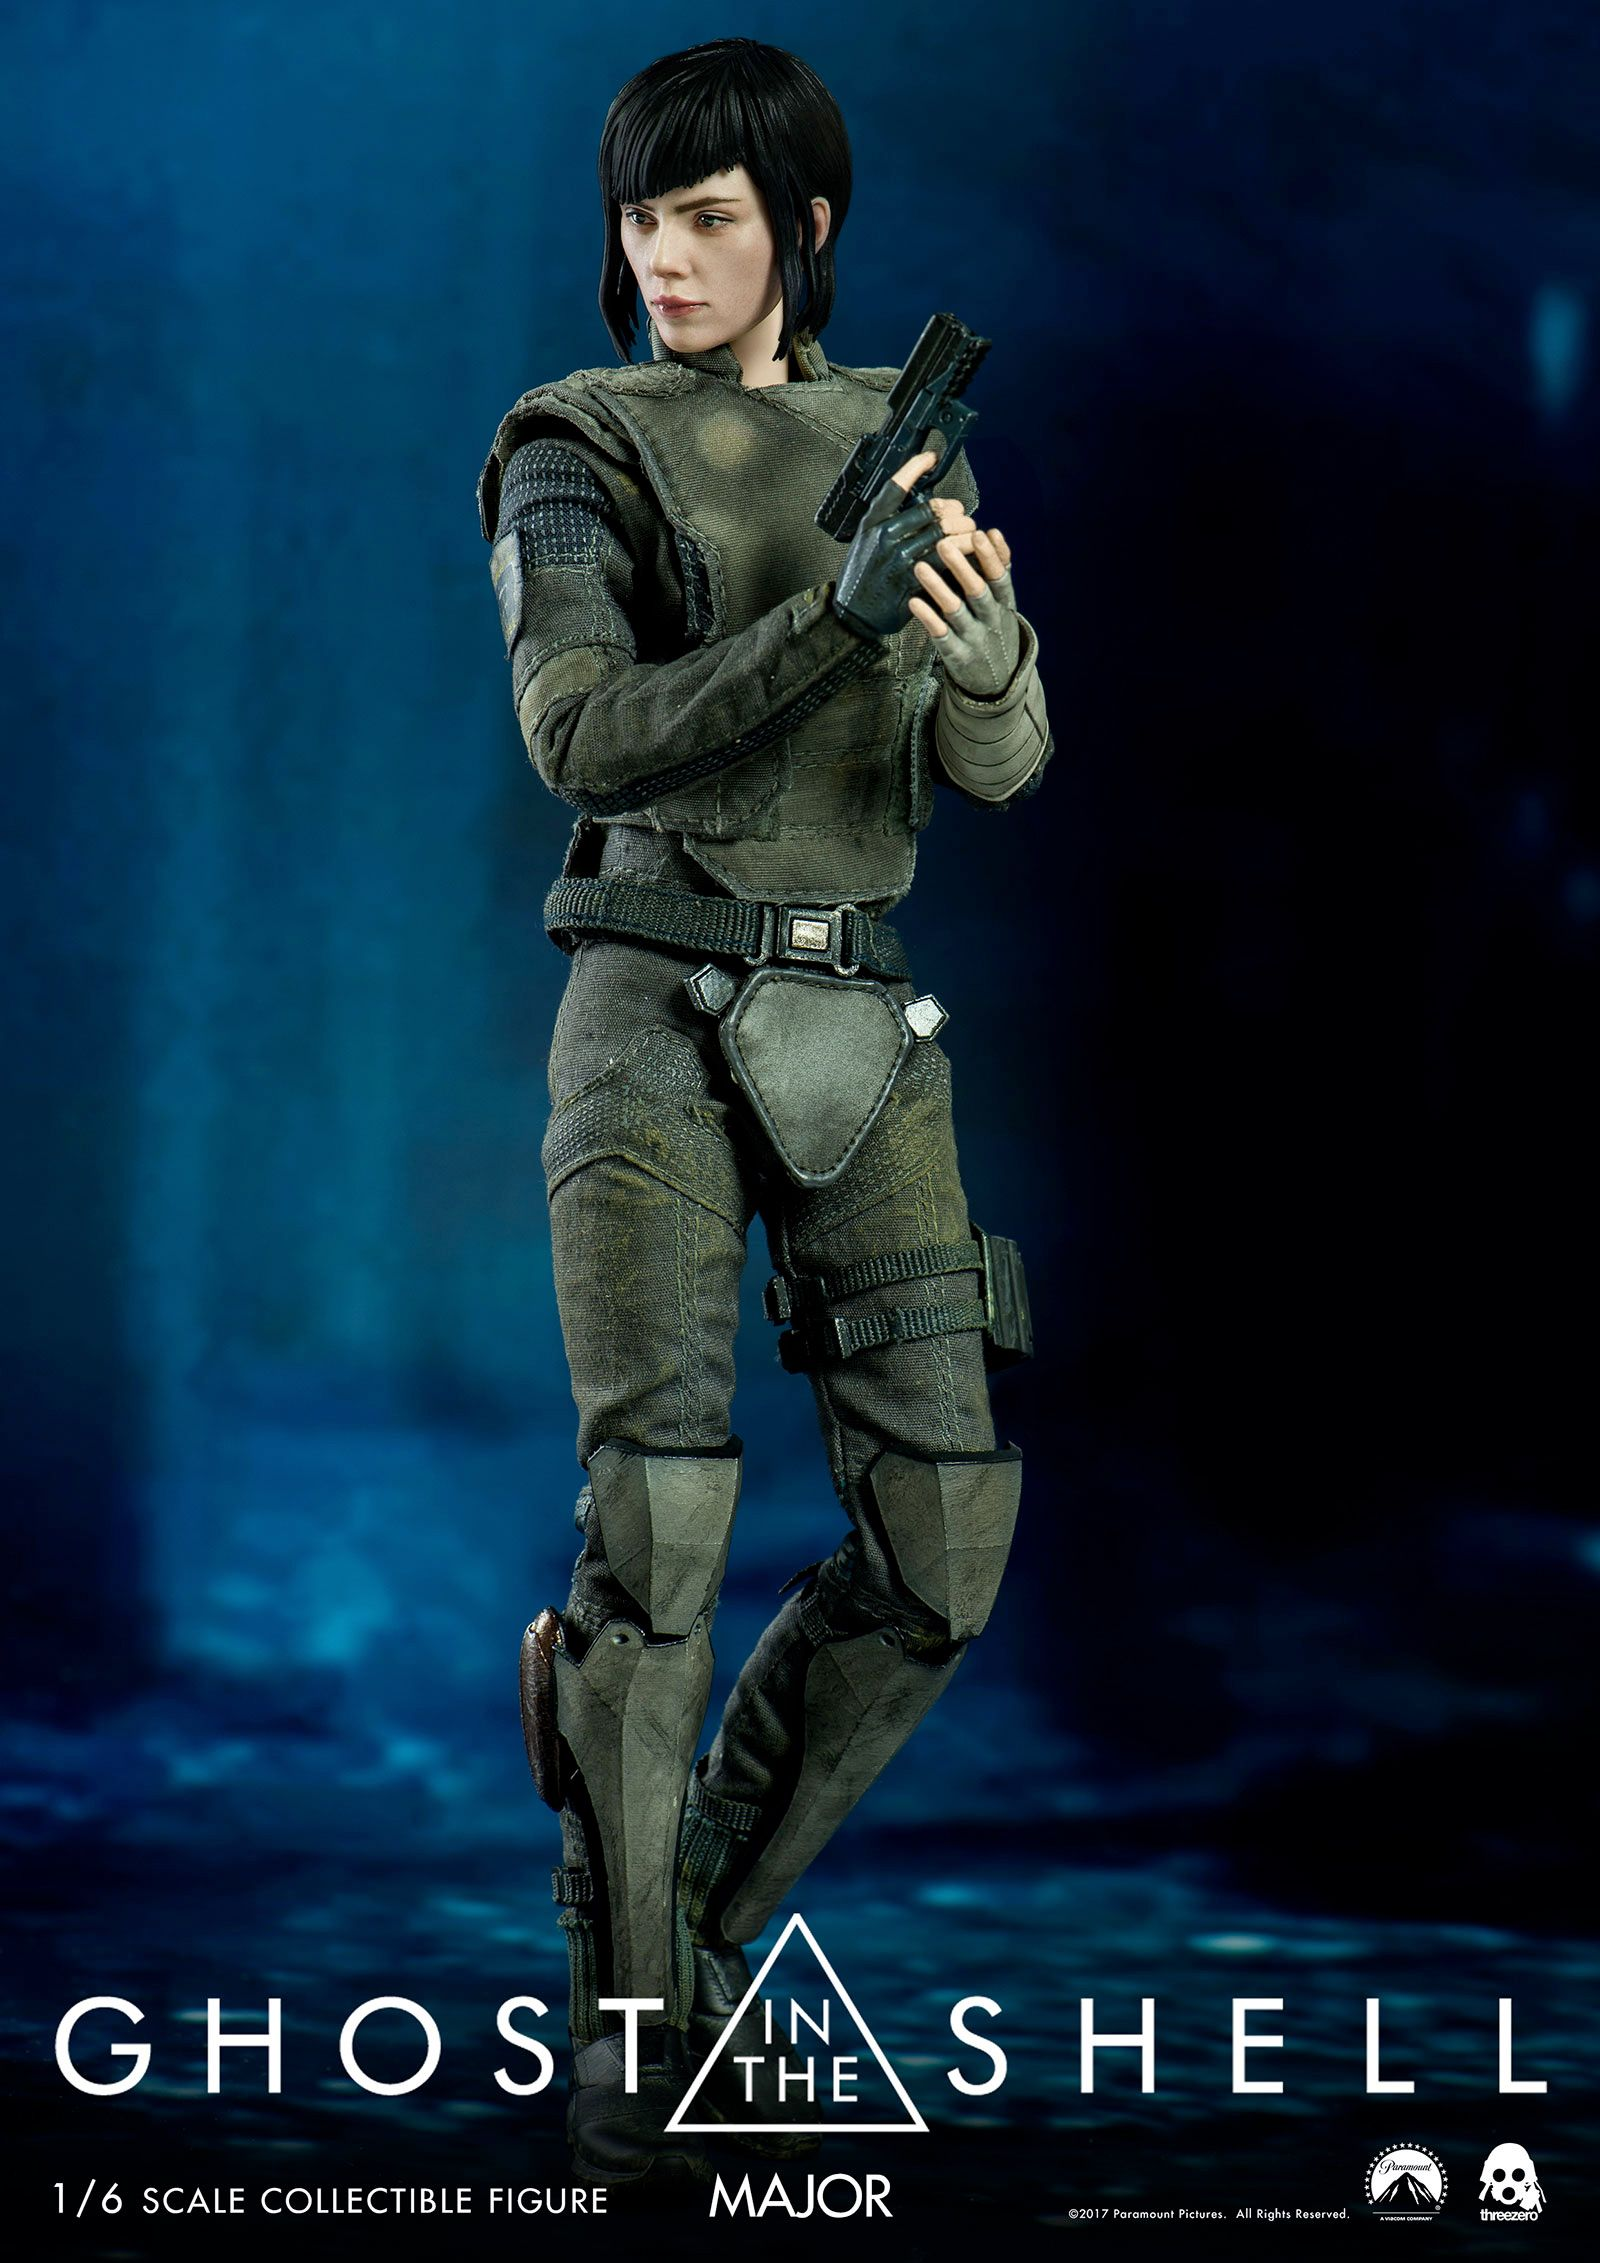 Ghost-In-The-Shell-MAJOR-Collectible-Action-Figure-06